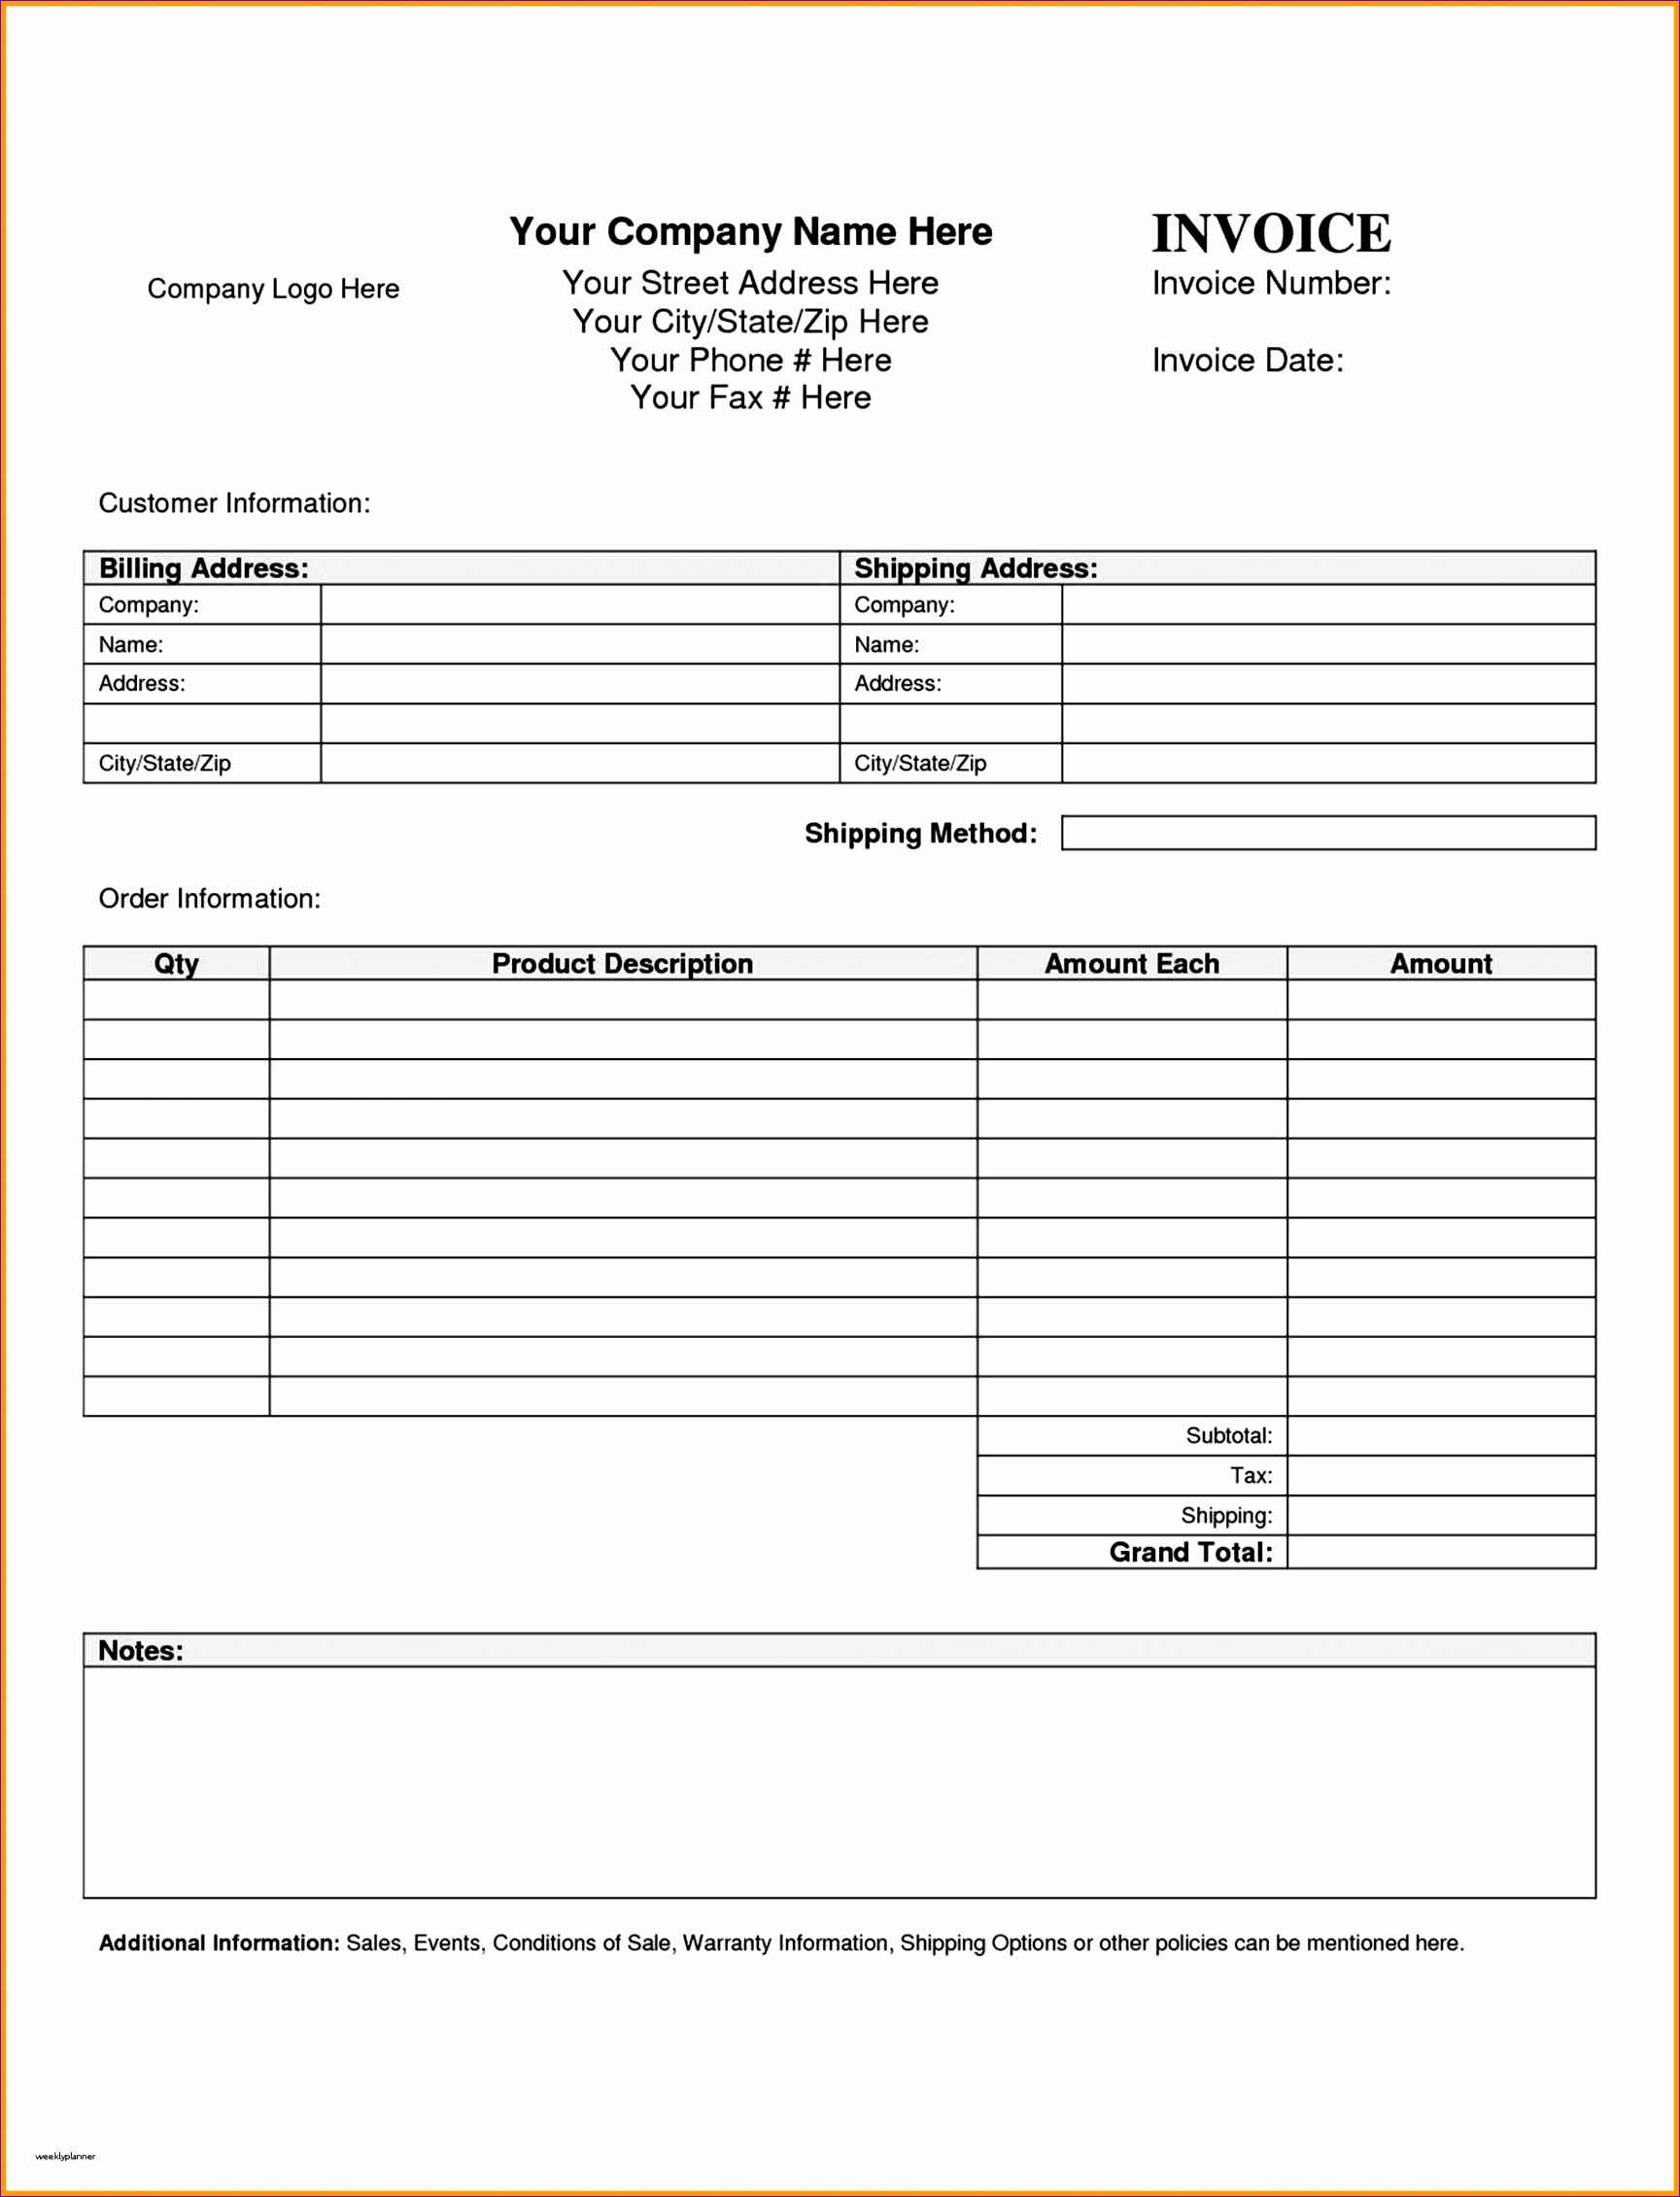 excel order form template beautiful free excel order form template mac printable purchase order form of excel order form template